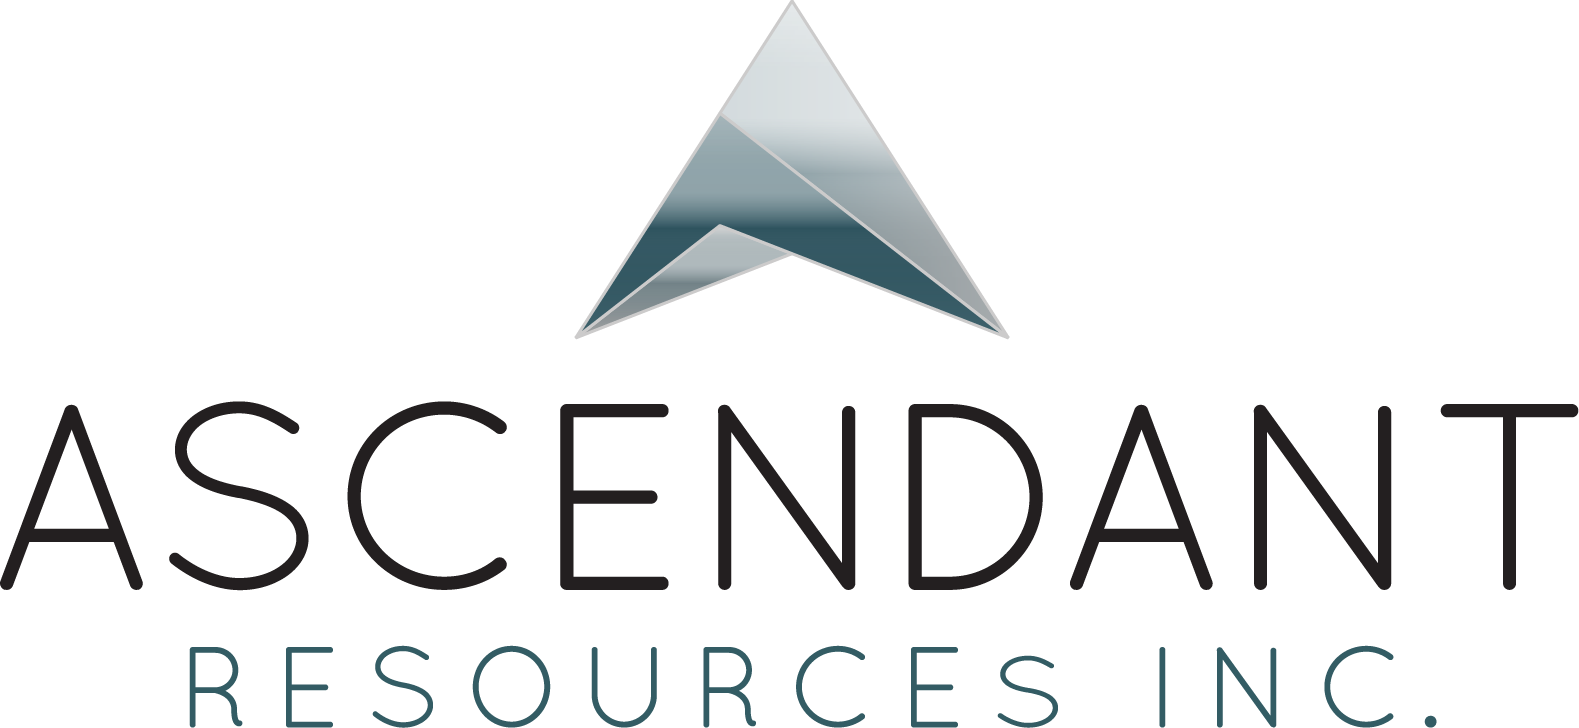 Ascendant Resources Achieves Its 11th Consecutive Quarter Of Metal Production Growth In Q3 2019 At Its El Mochito Mine In Honduras